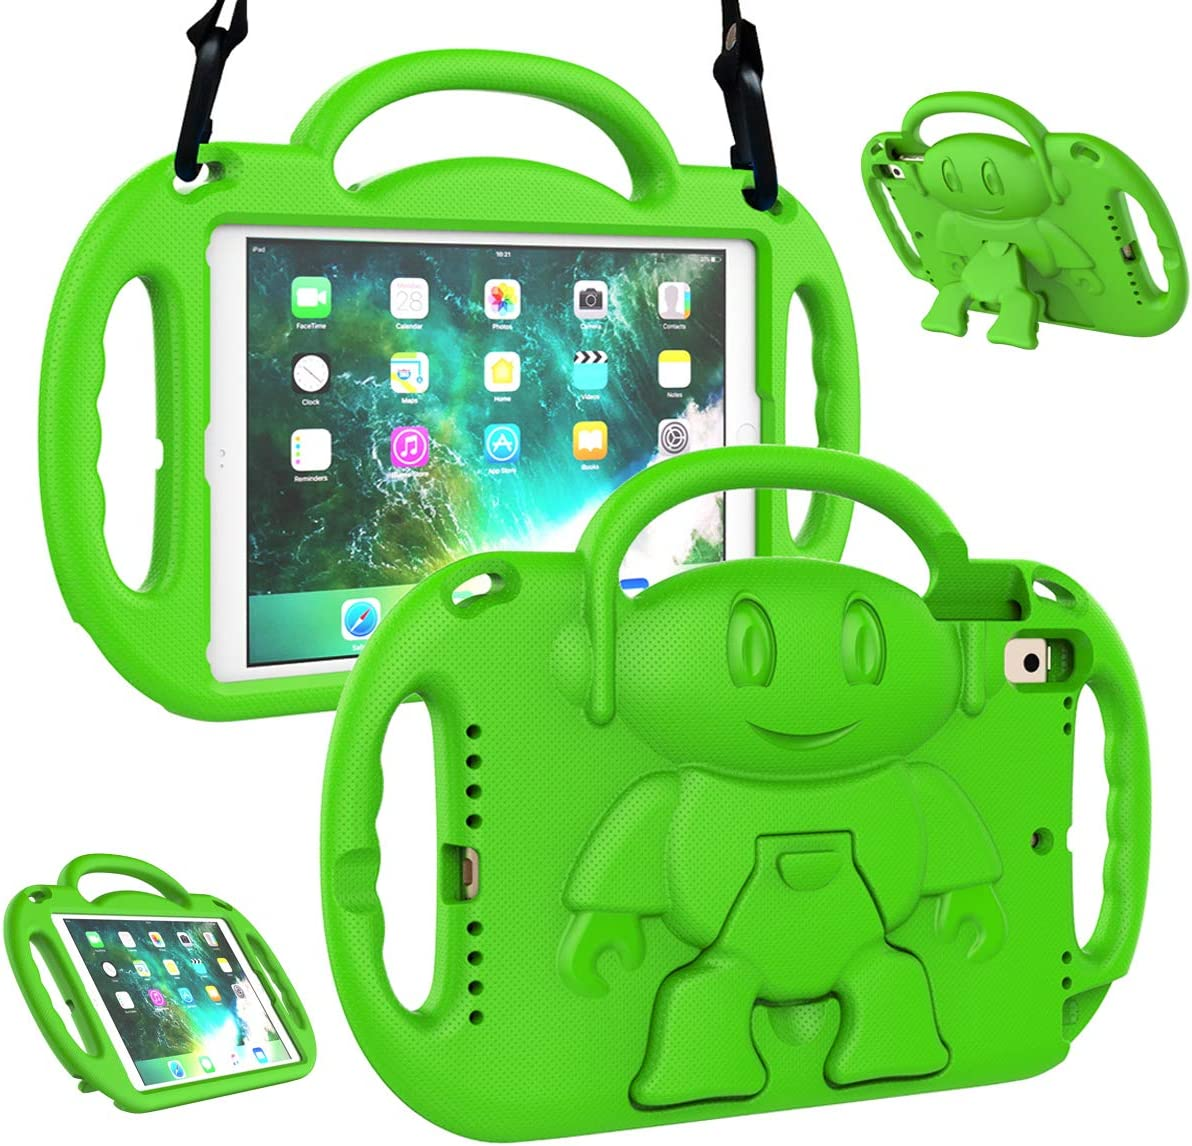 LTROP iPad 6th Generation Case, 9.7 iPad Case 2018, iPad 9.7-Inch Case - Light Weight Shock Proof Handle Stand Shoulder Strap Kids Case for 9.7 inch Apple iPad 6th Gen/ 5th Gen/ Air 2/ Air - Green